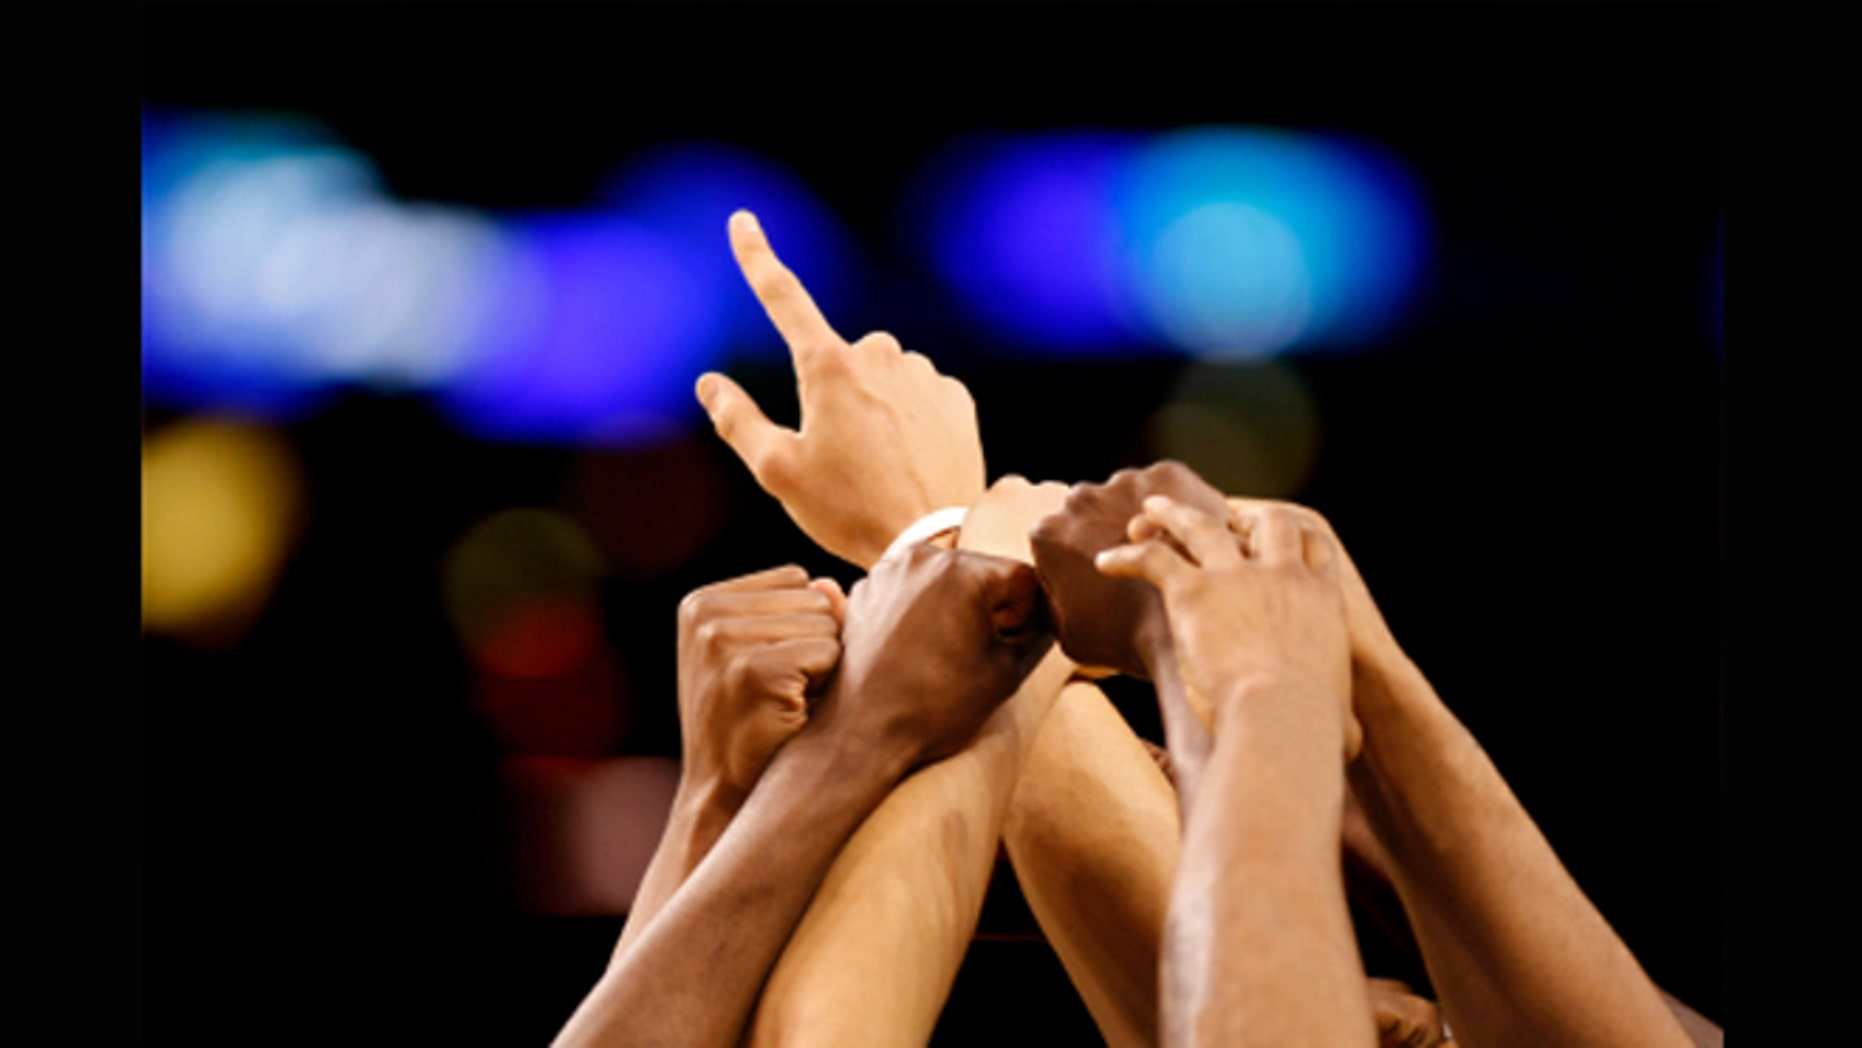 A collection of hands reach toward a central goal before a sporting event.